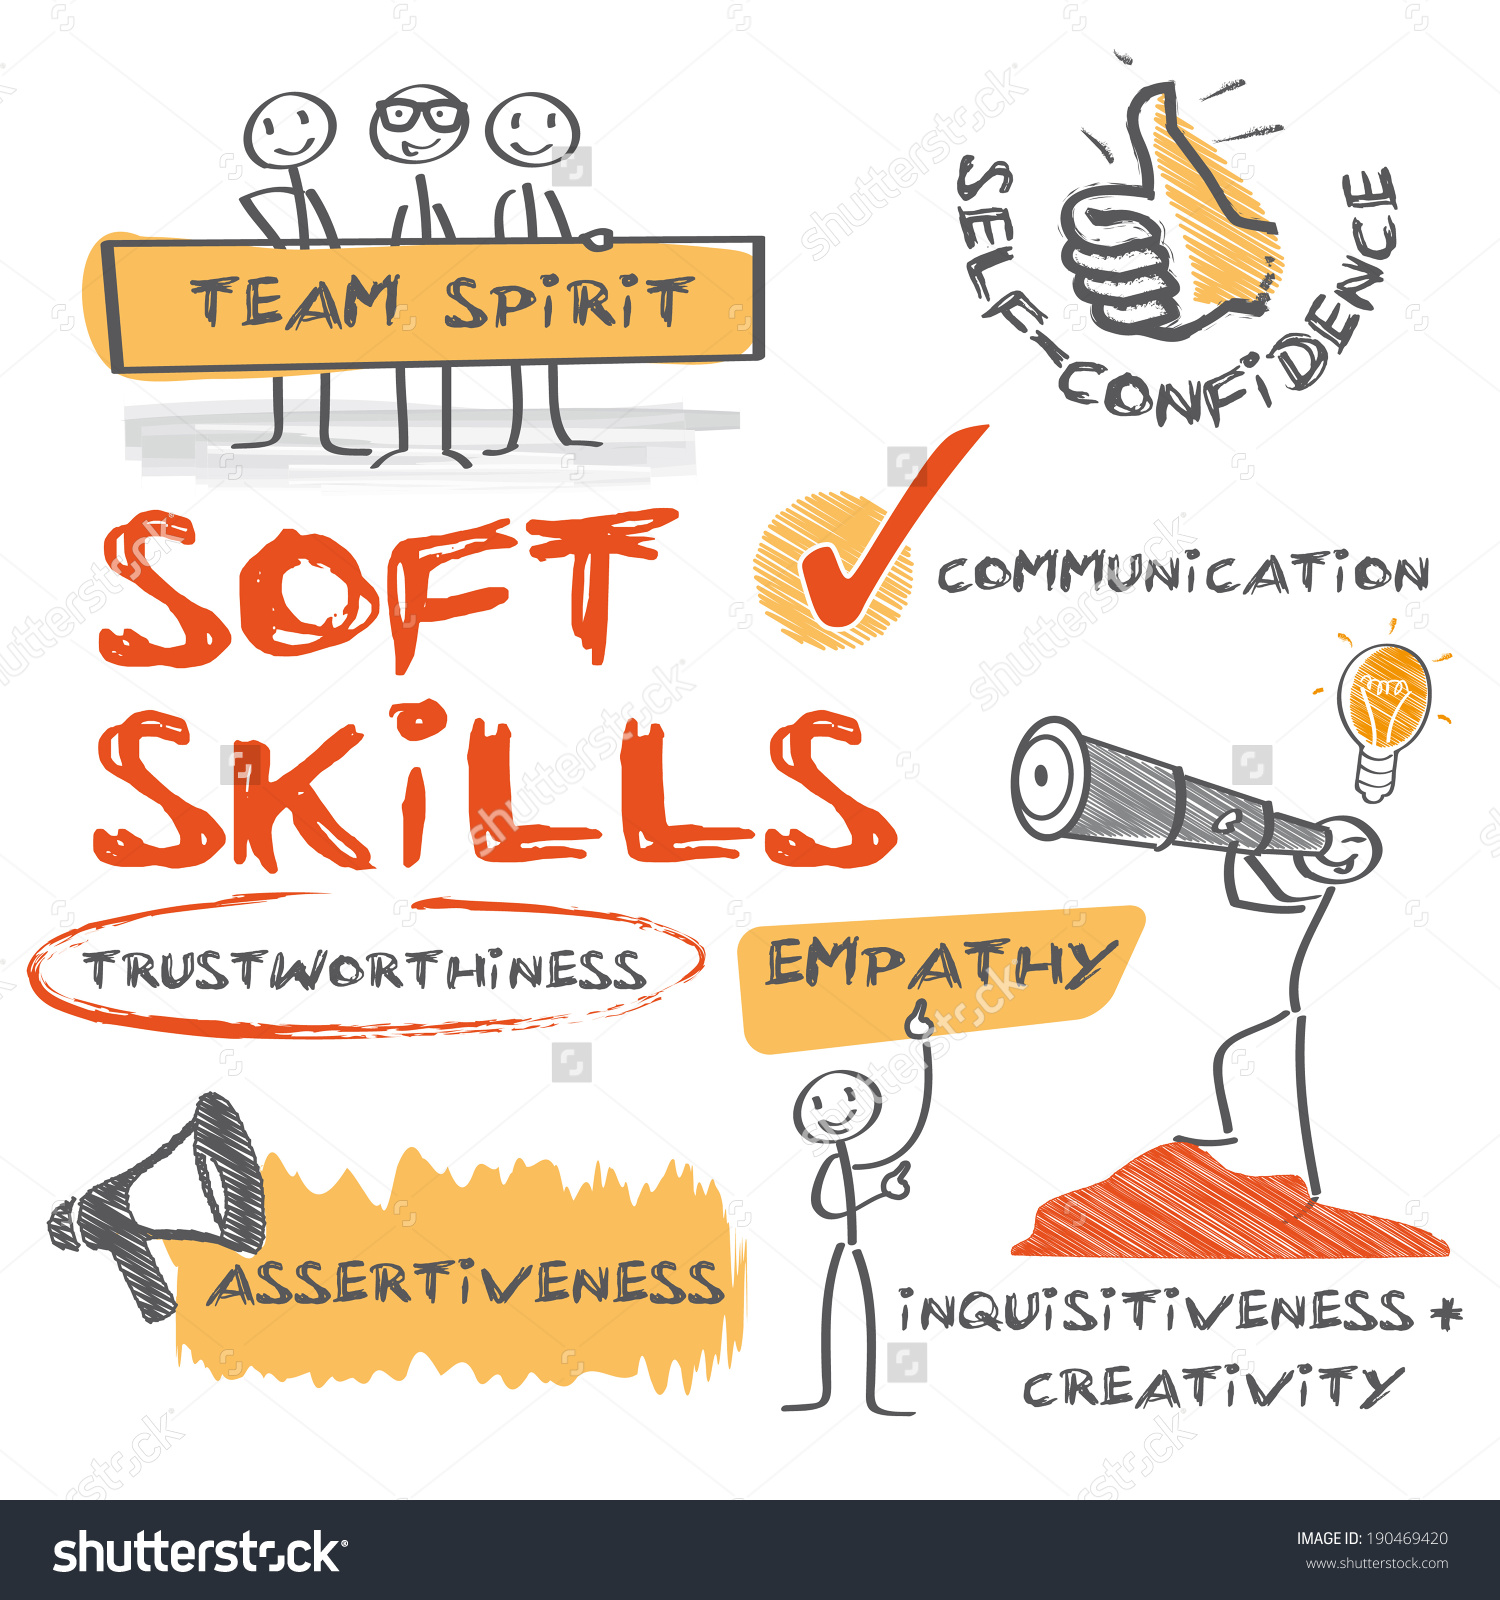 Lovely Blog44.0 Regard To Soft Skills List